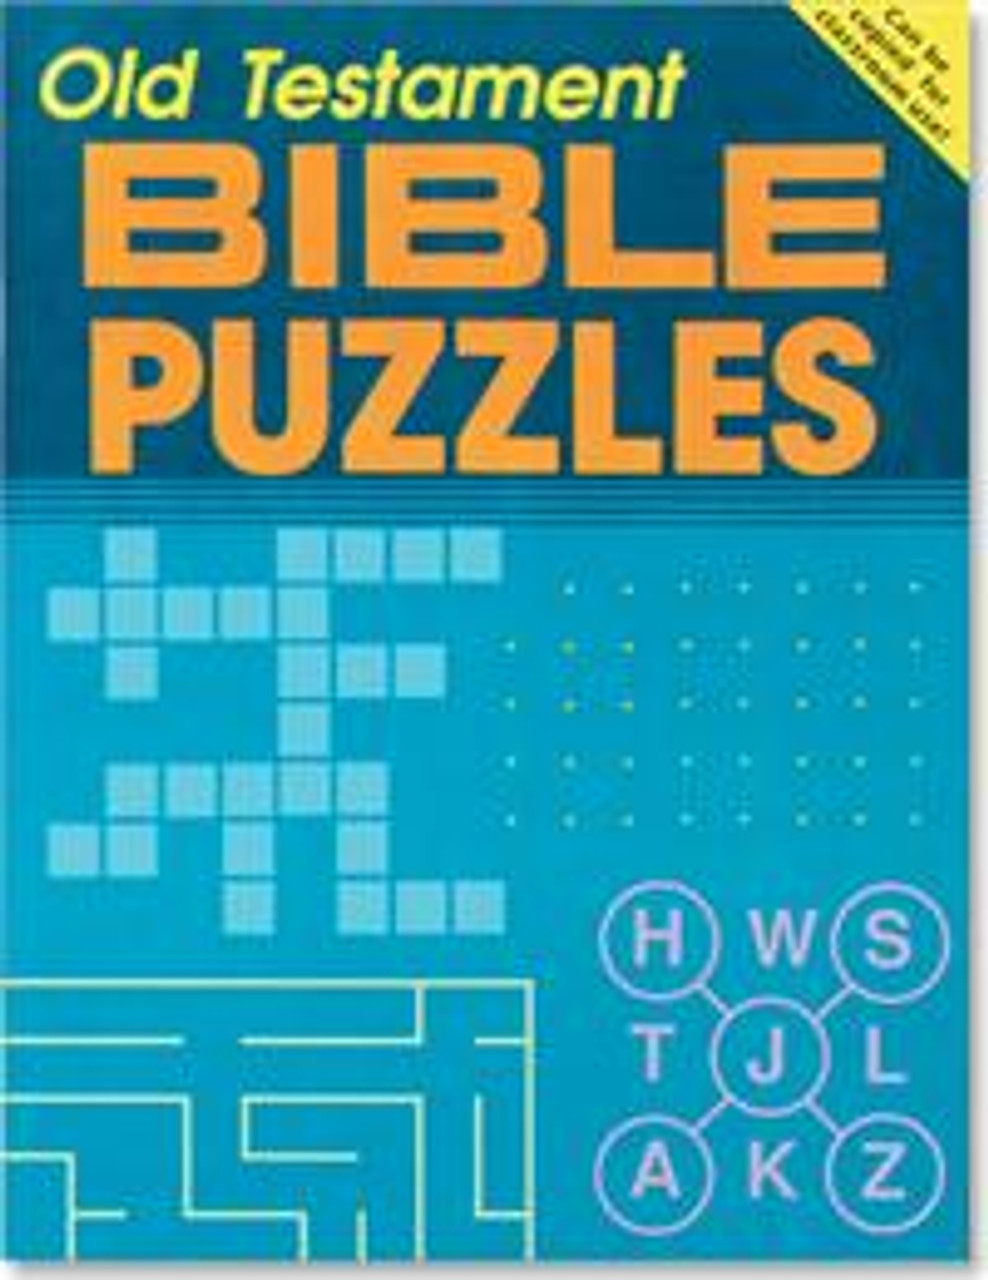 Bible Puzzles - Old Testament - Grades 4 & up